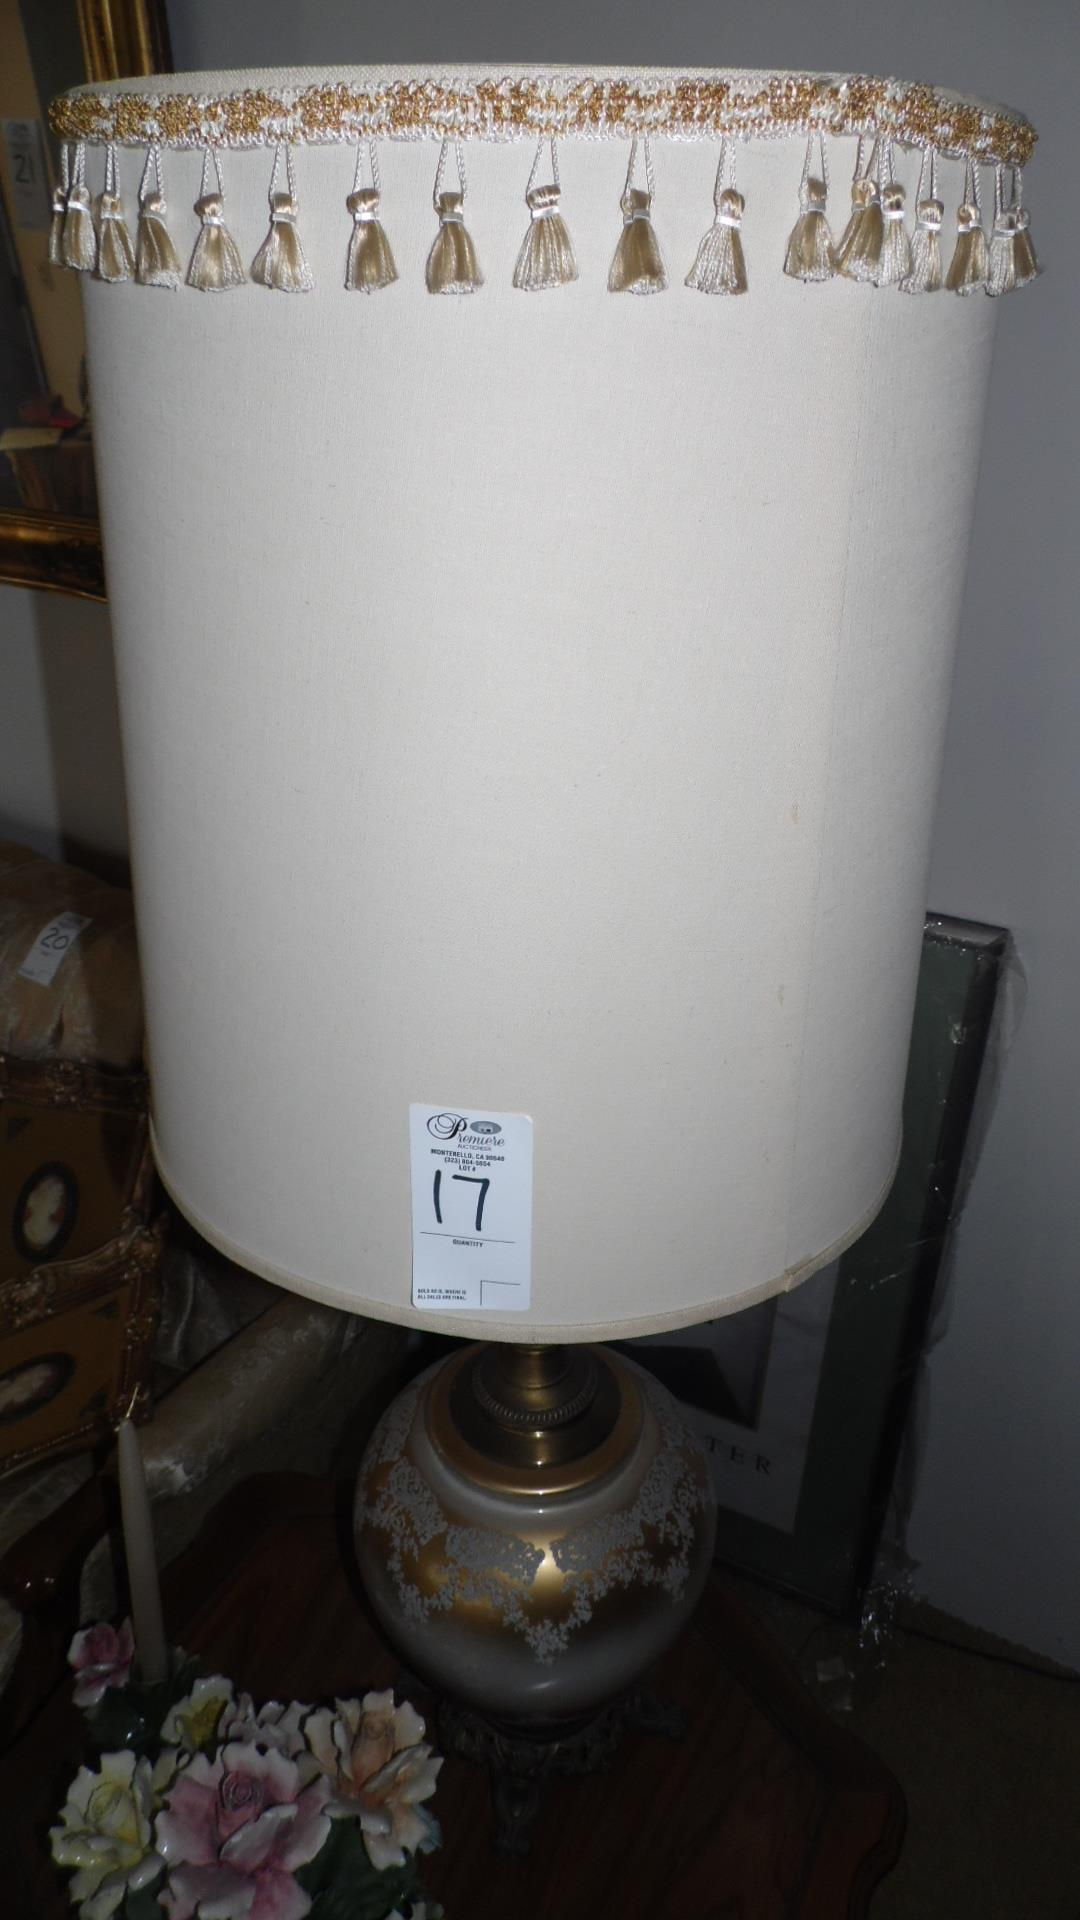 Lot 17 - BROWN / WHITE LAMPS